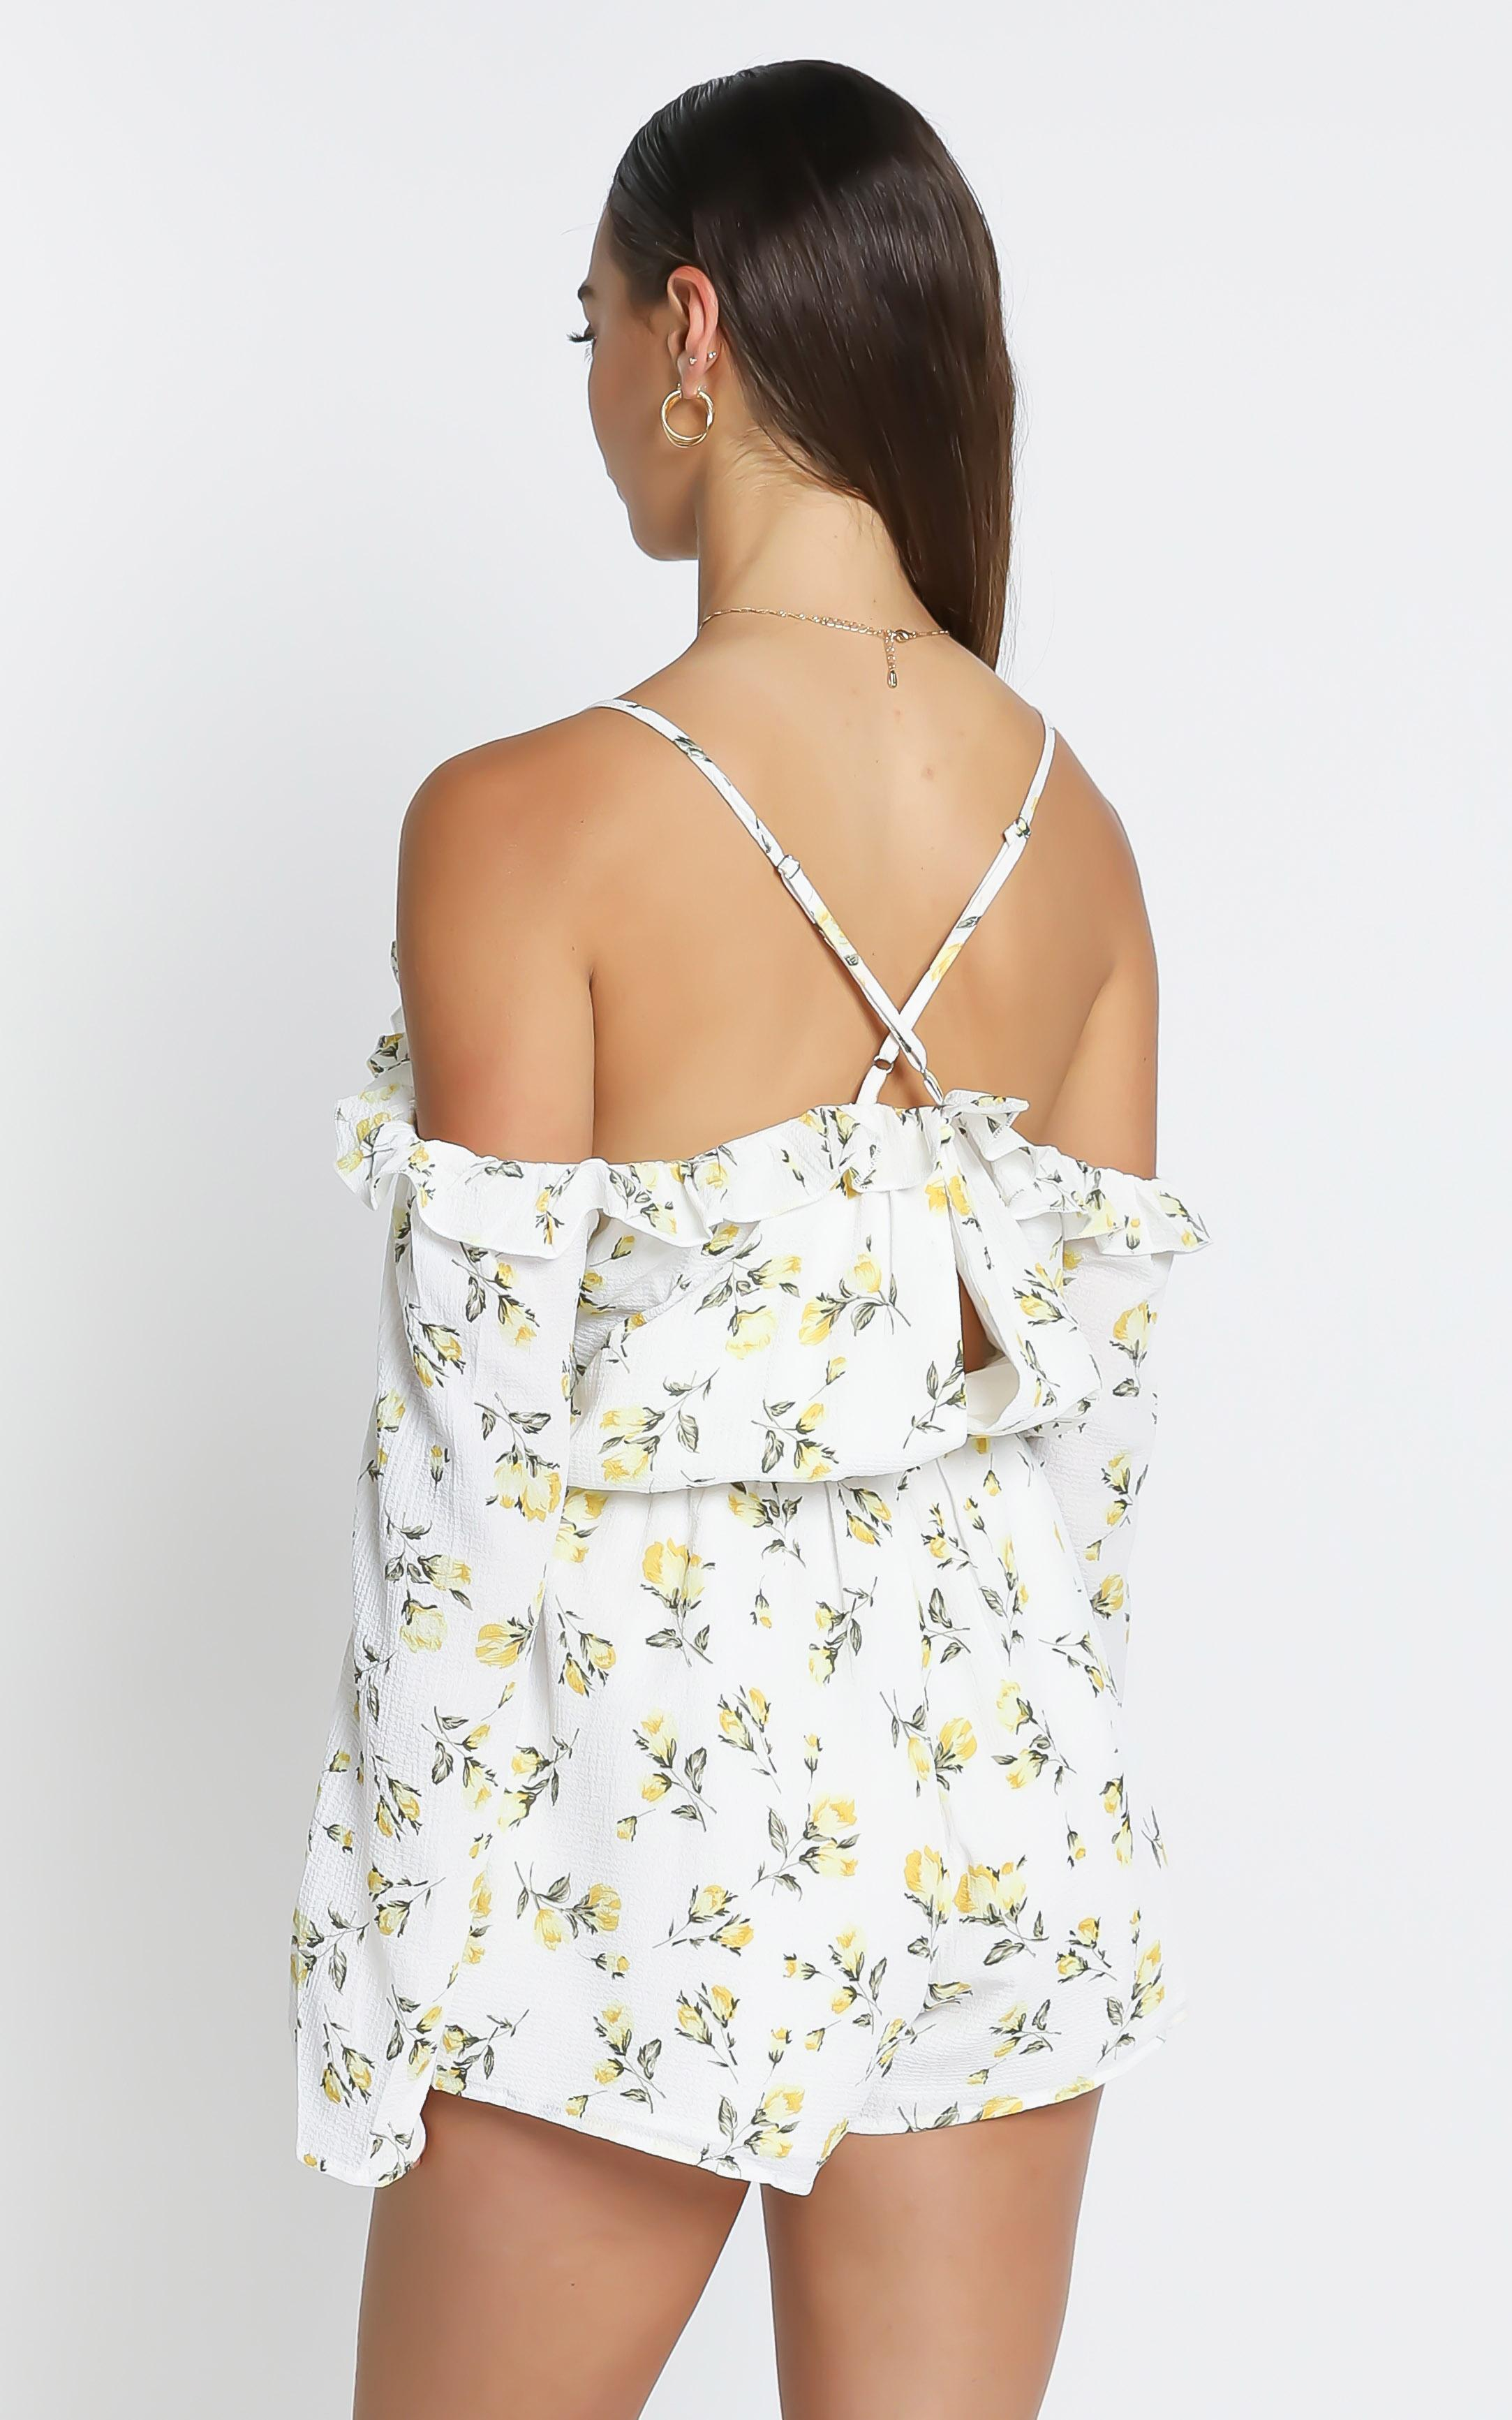 Lemonade Playsuit in White Floral - 6 (XS), White, hi-res image number null